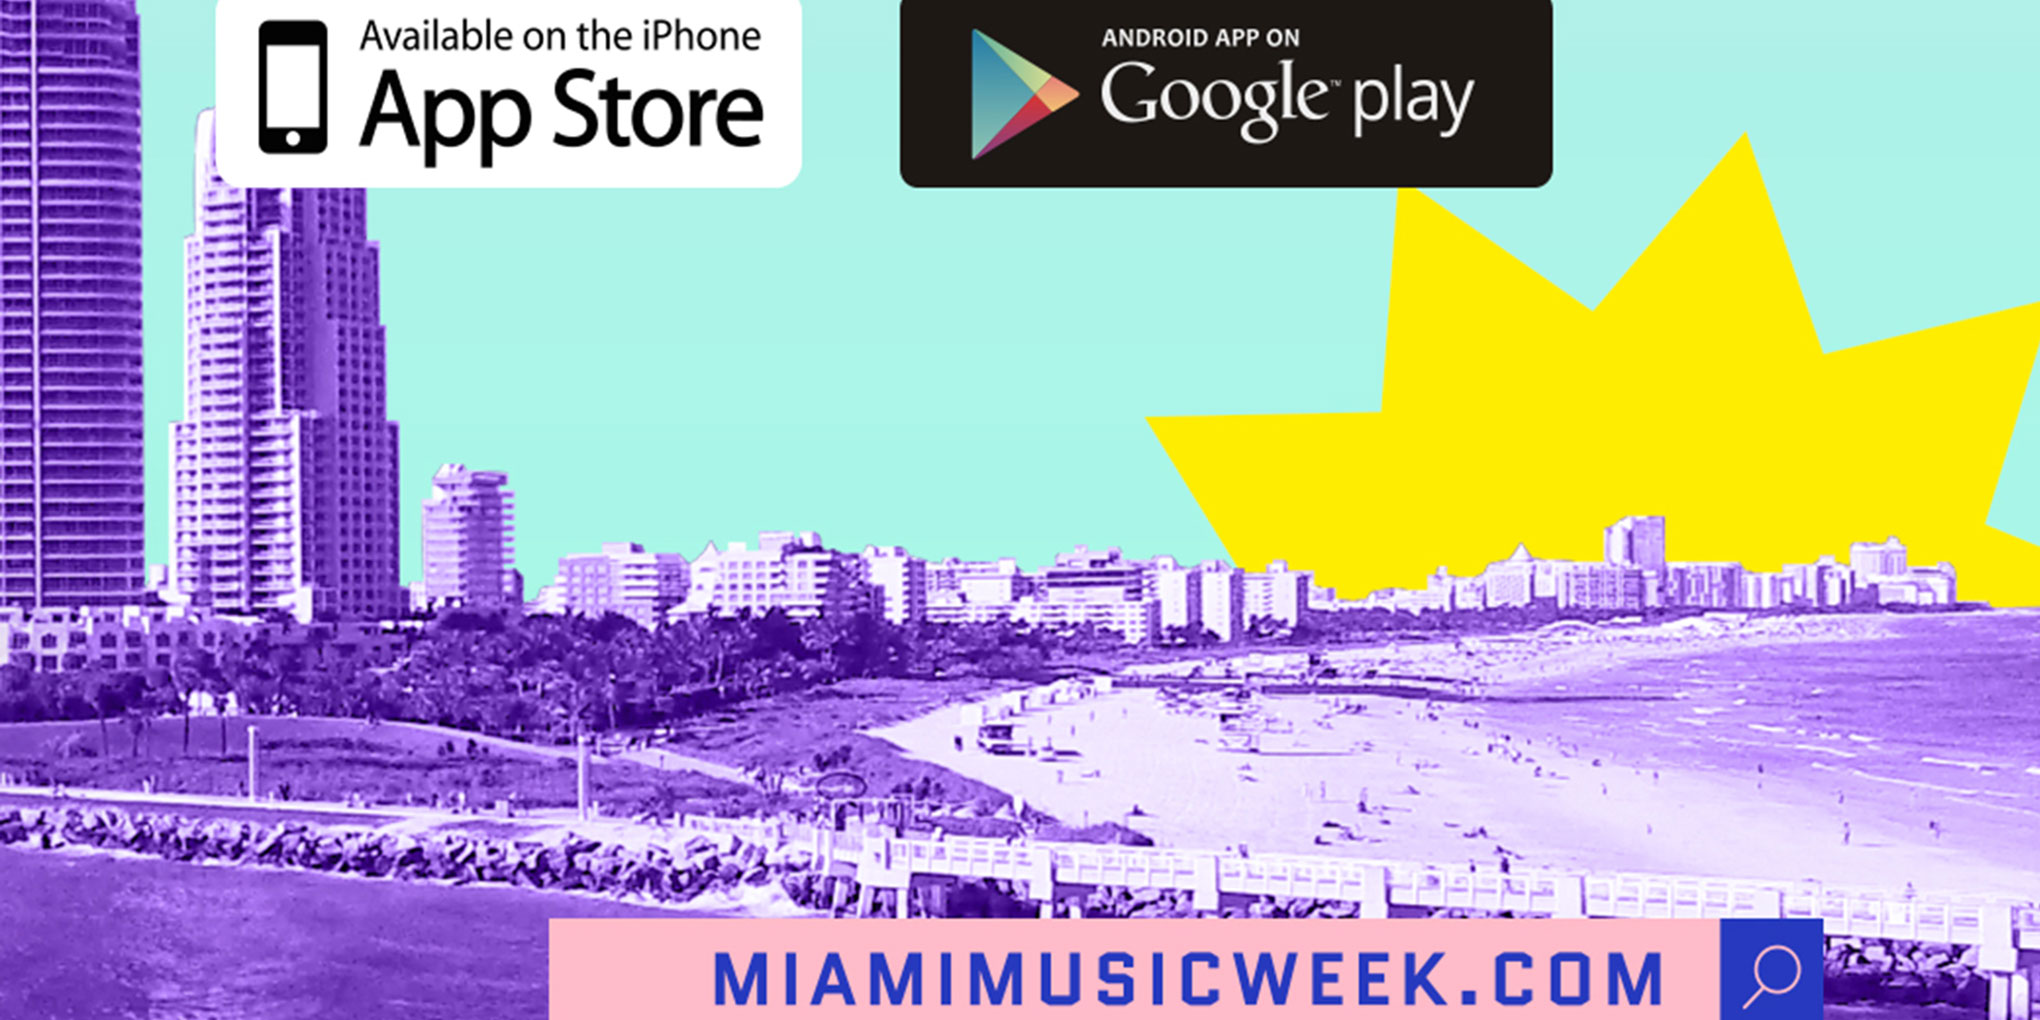 Miami Music Week 2017 App Is Available For Download Image